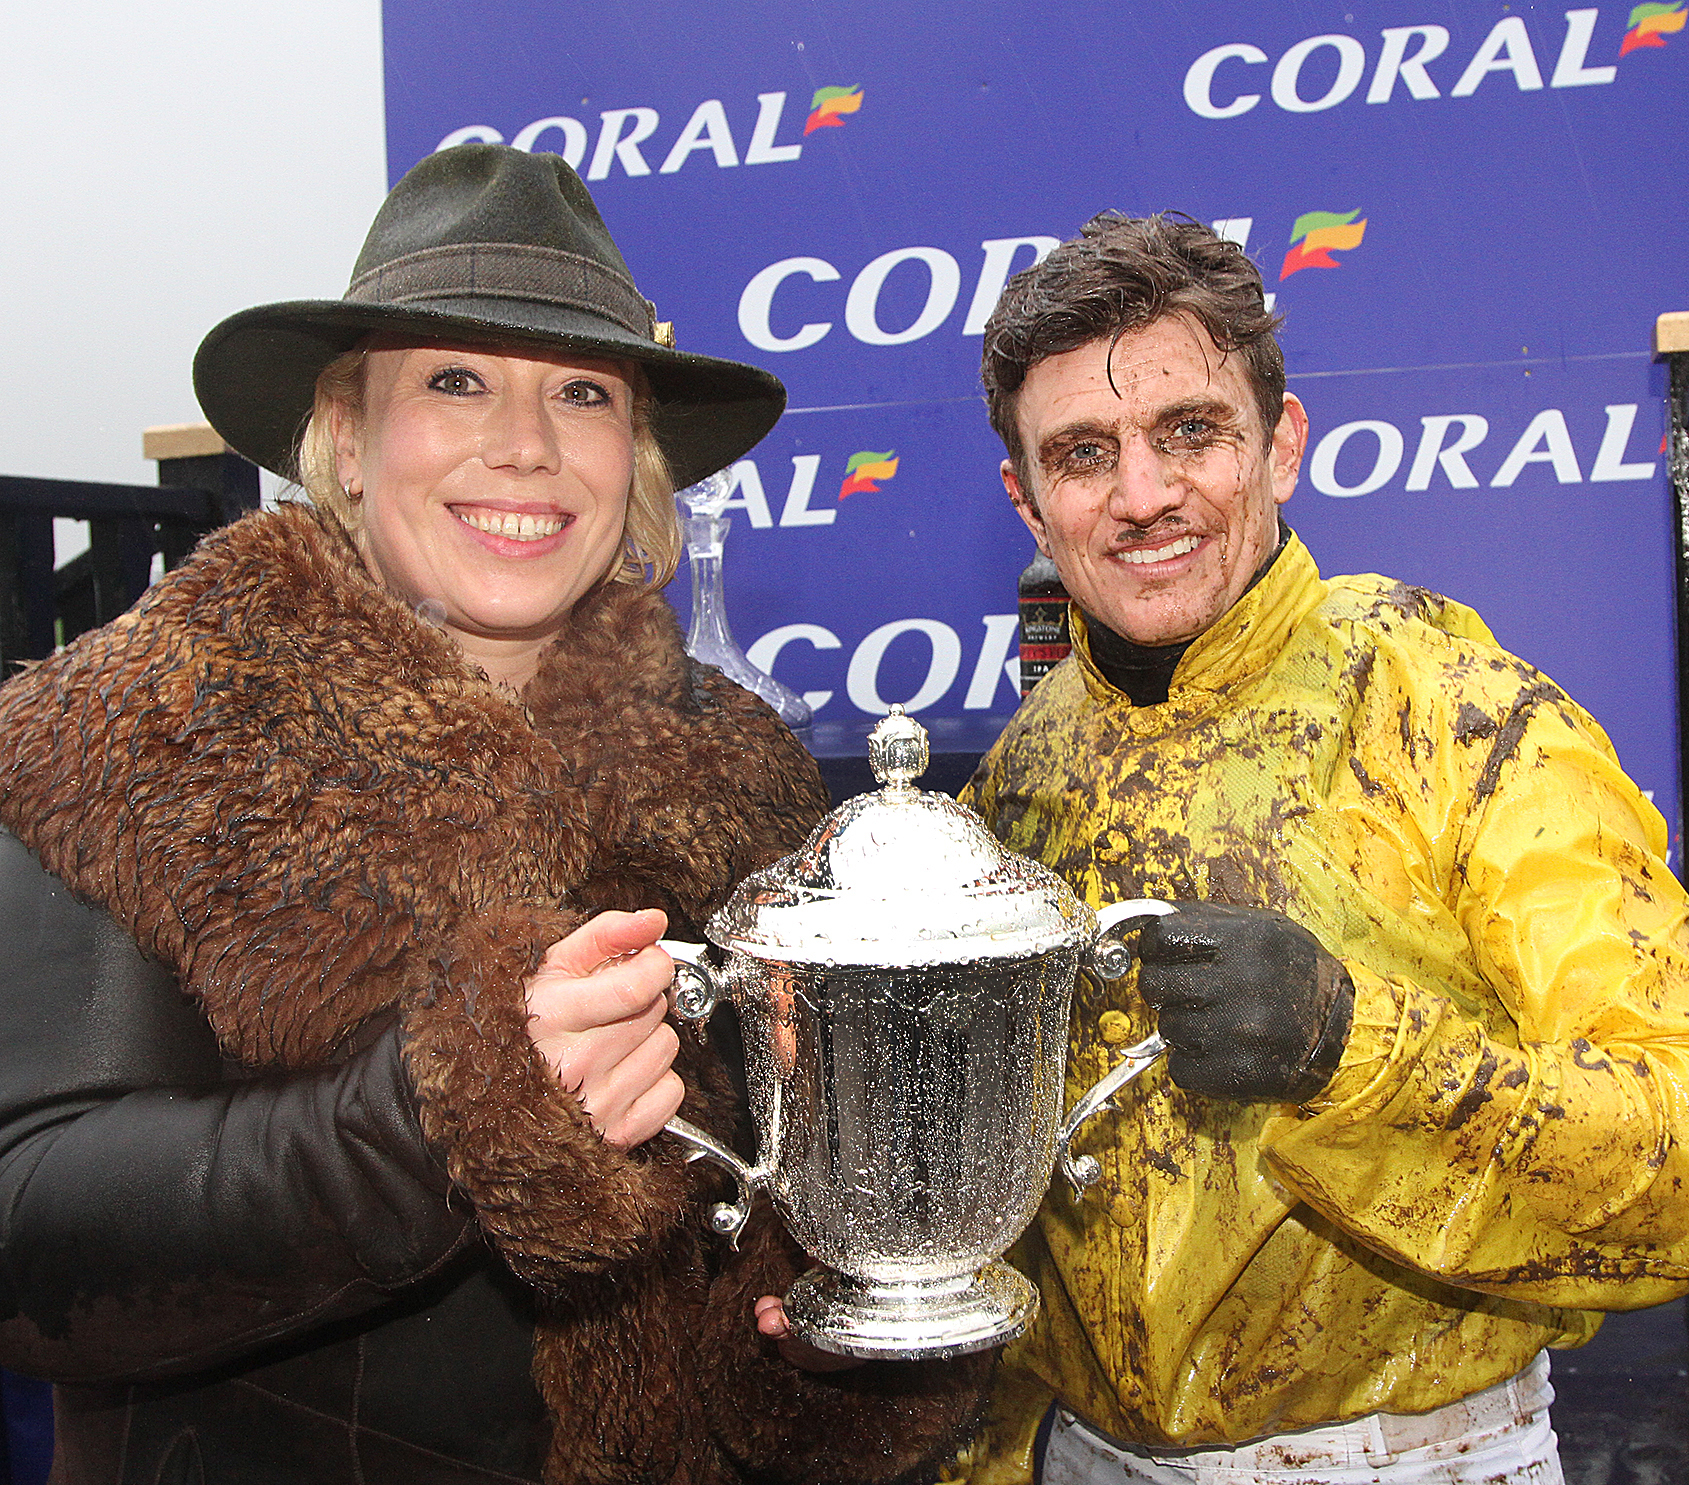 Kerry Lee, seen here with jockey Jamie Moore following a Welsh Grand National win, had another winner at Hereford